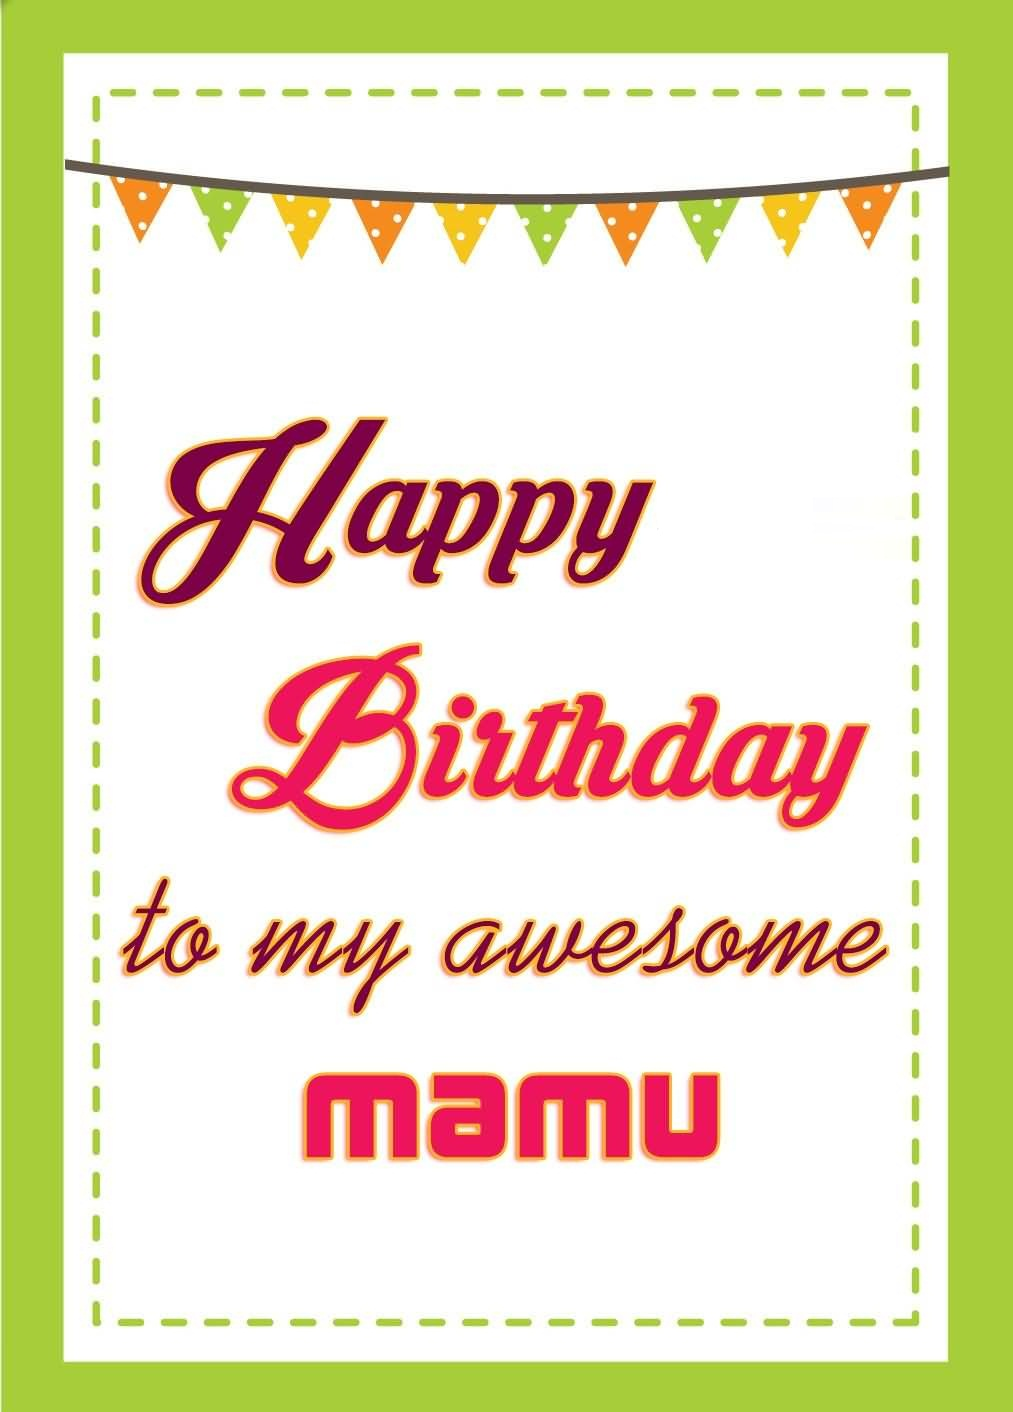 Greeting Card For Mamu Happy Birthday To My Awesome Mamu